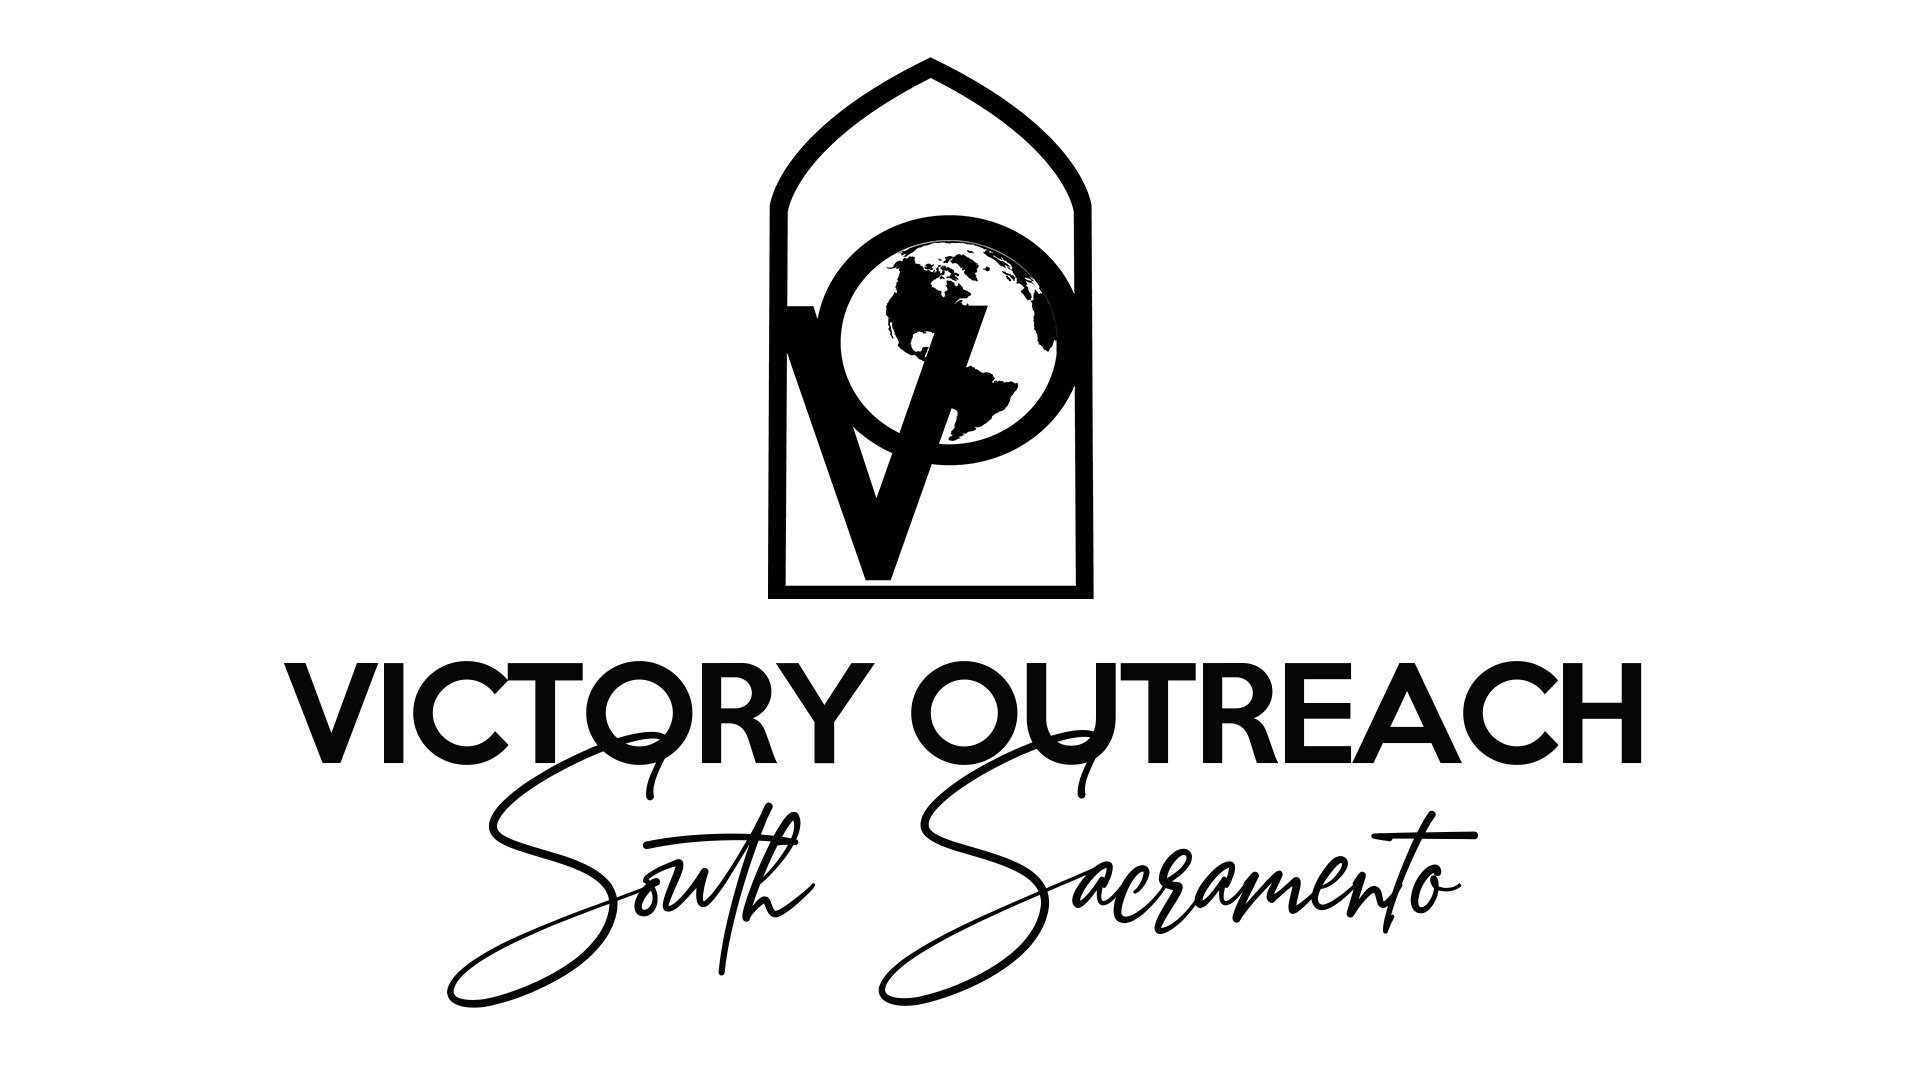 Victory Outreach South Sacramento